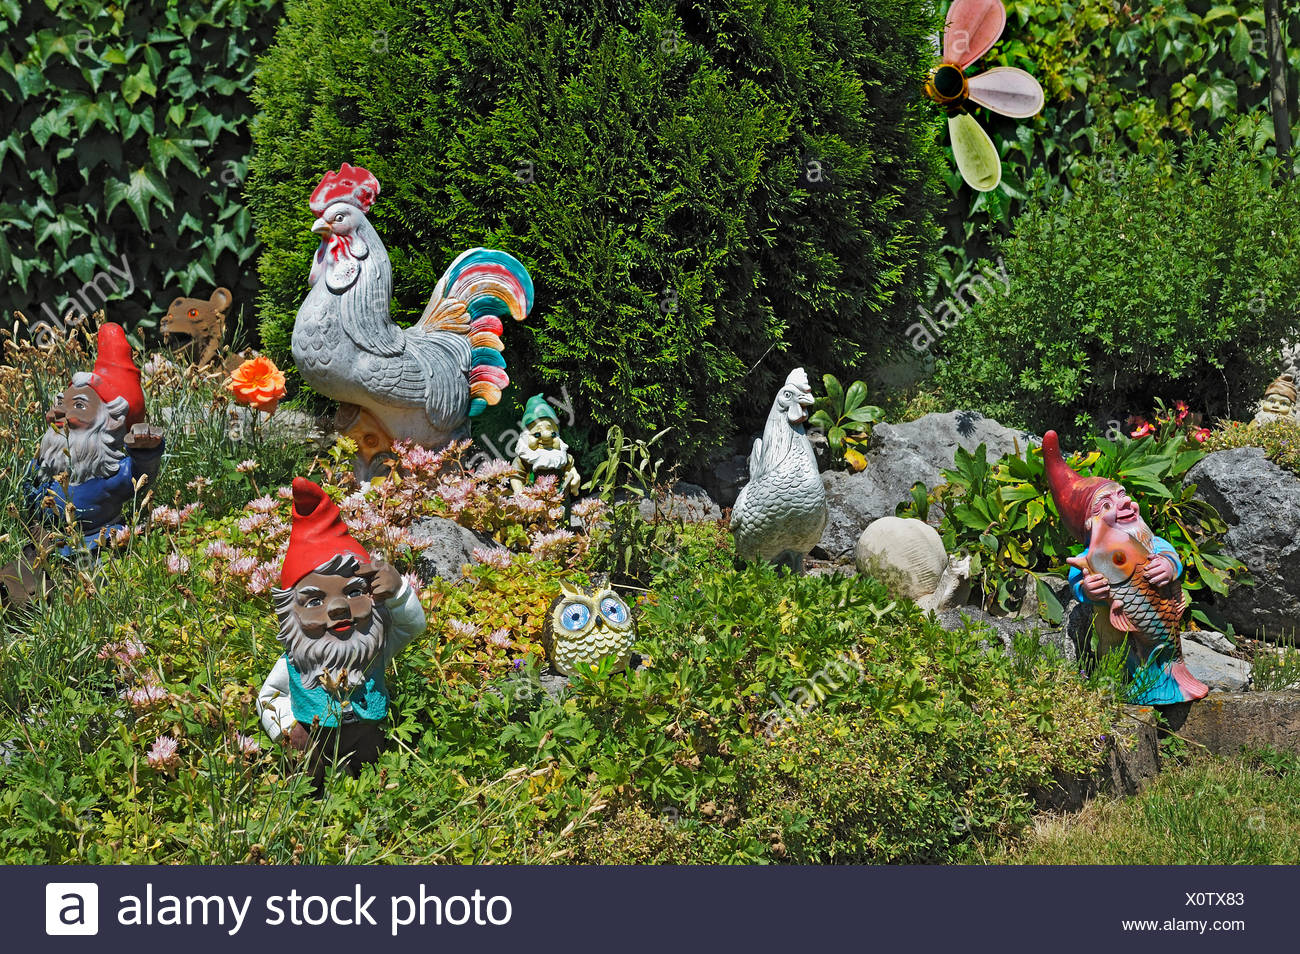 Clay figures, garden gnomes and clay chickens in a garden, Bavaria, Germany - Stock Image